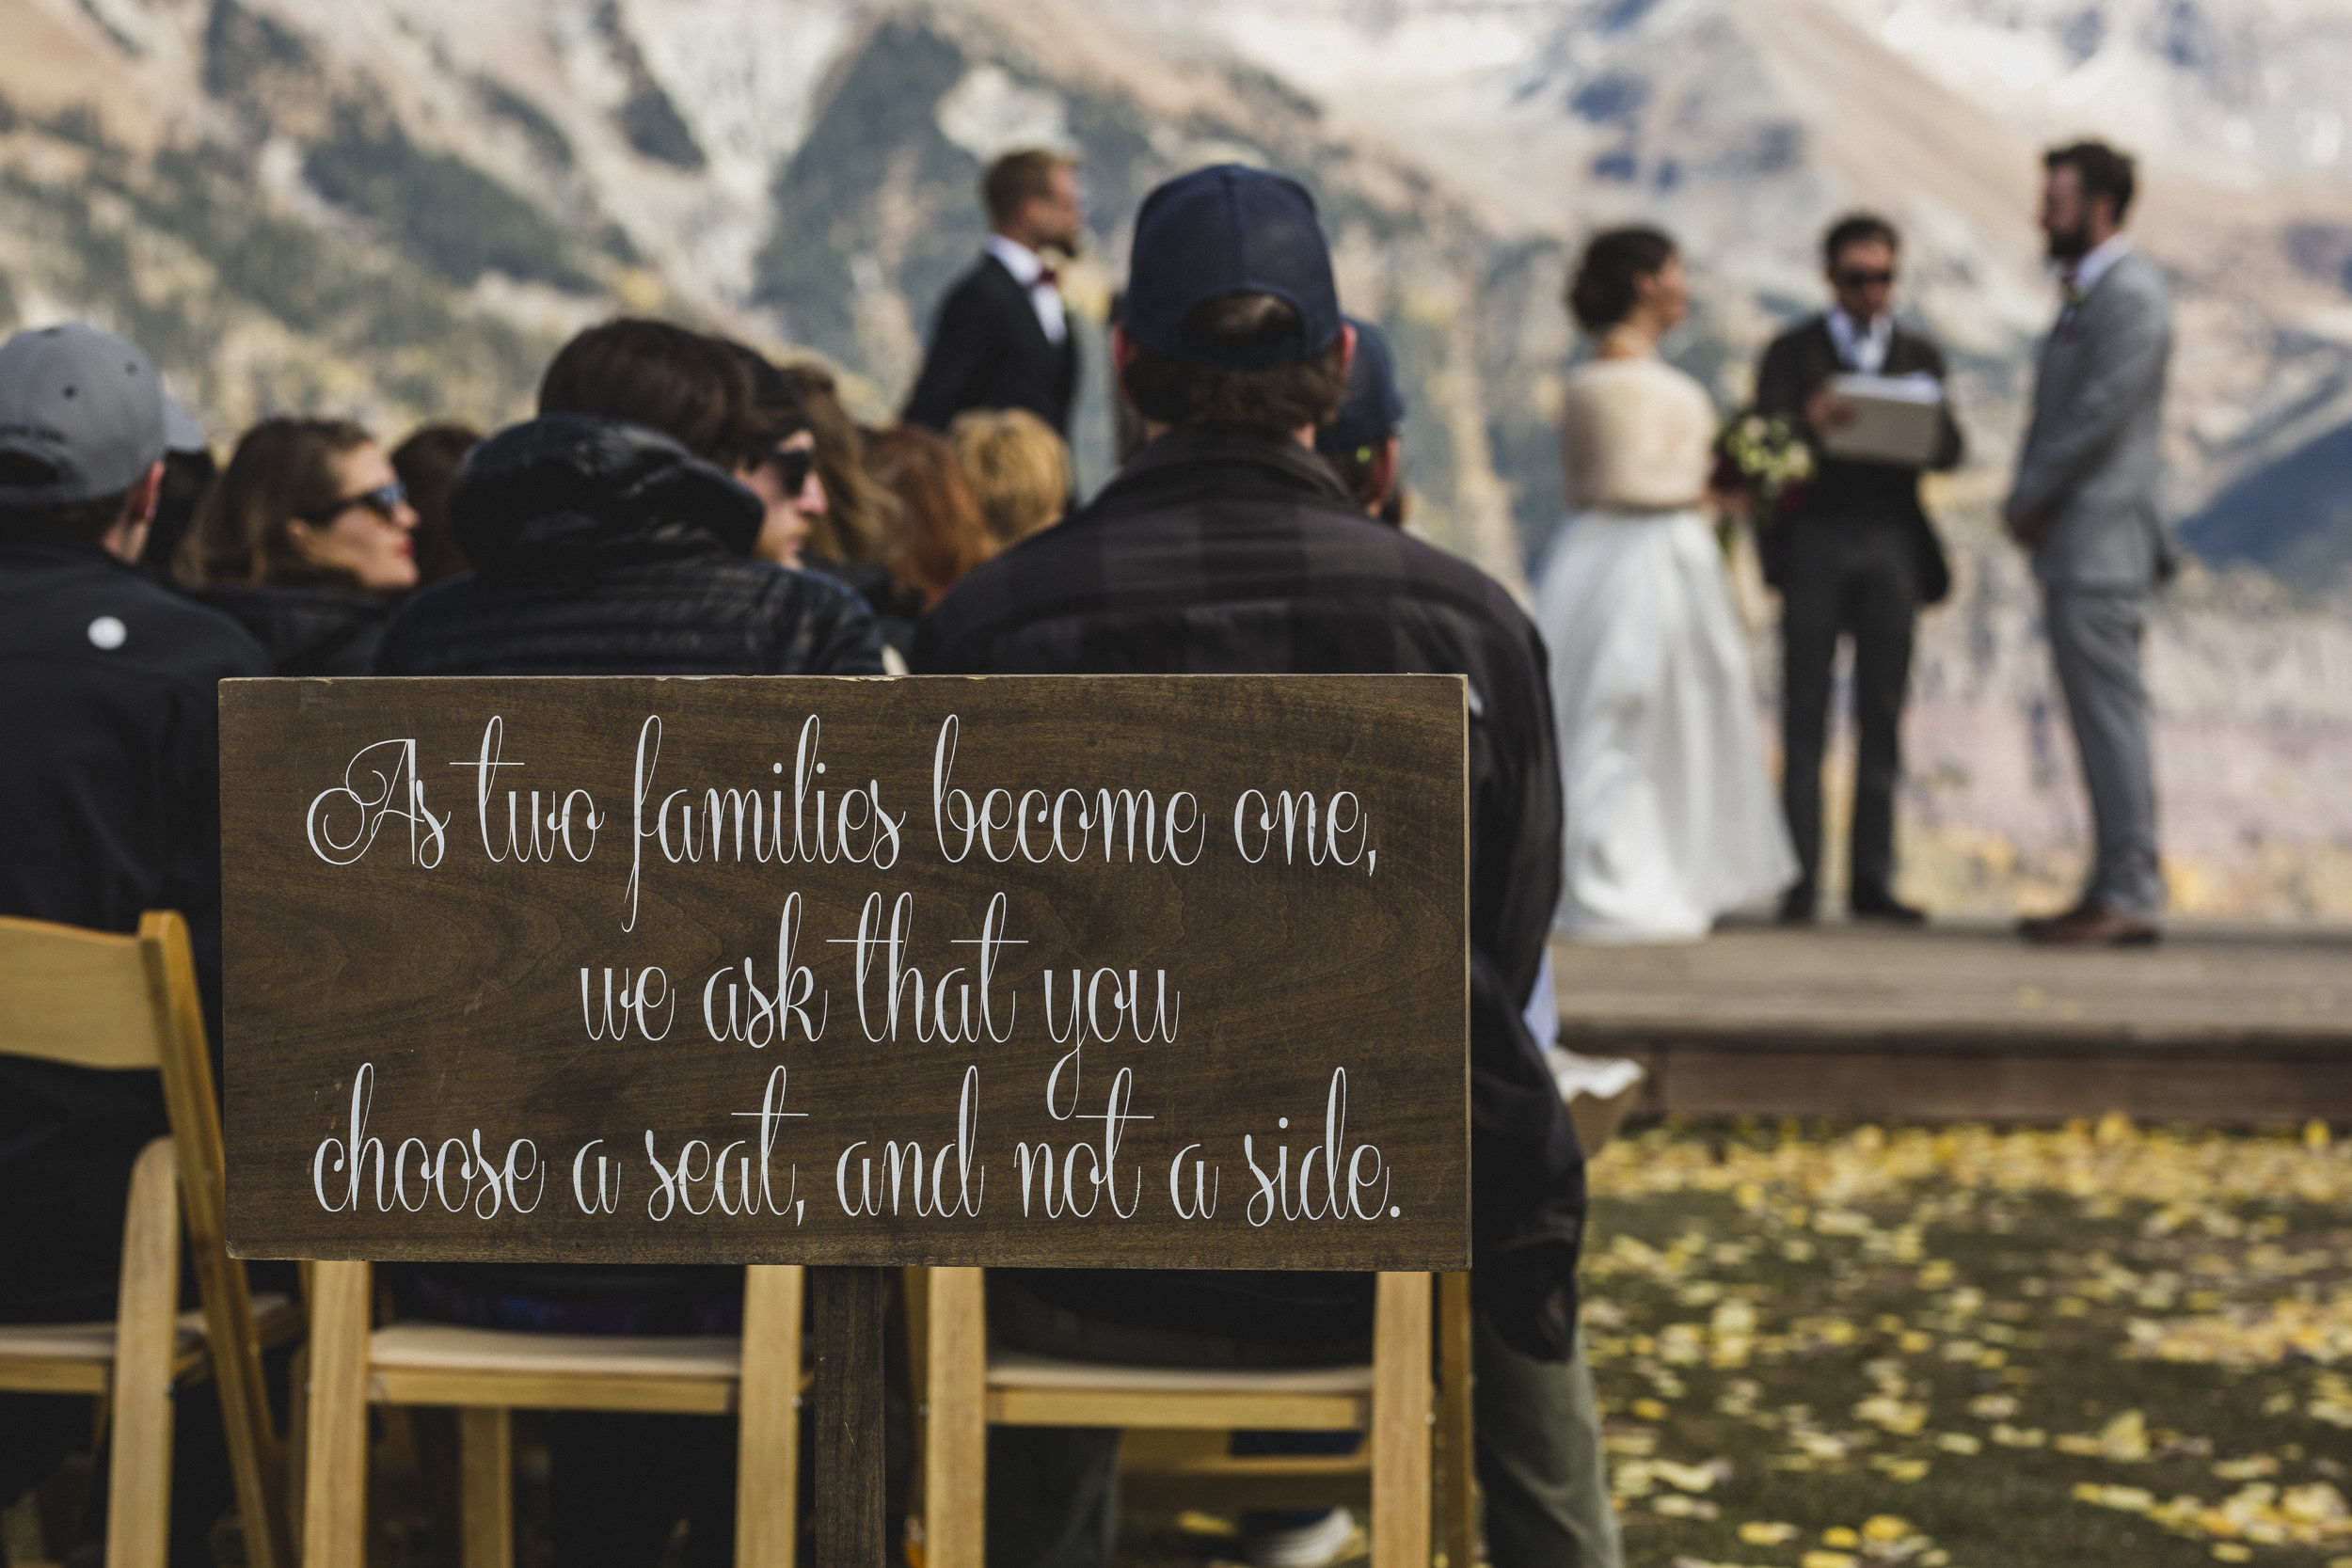 NE-LeahandAshtonphotography-Telluride-Wedding-Photography-9332.jpg